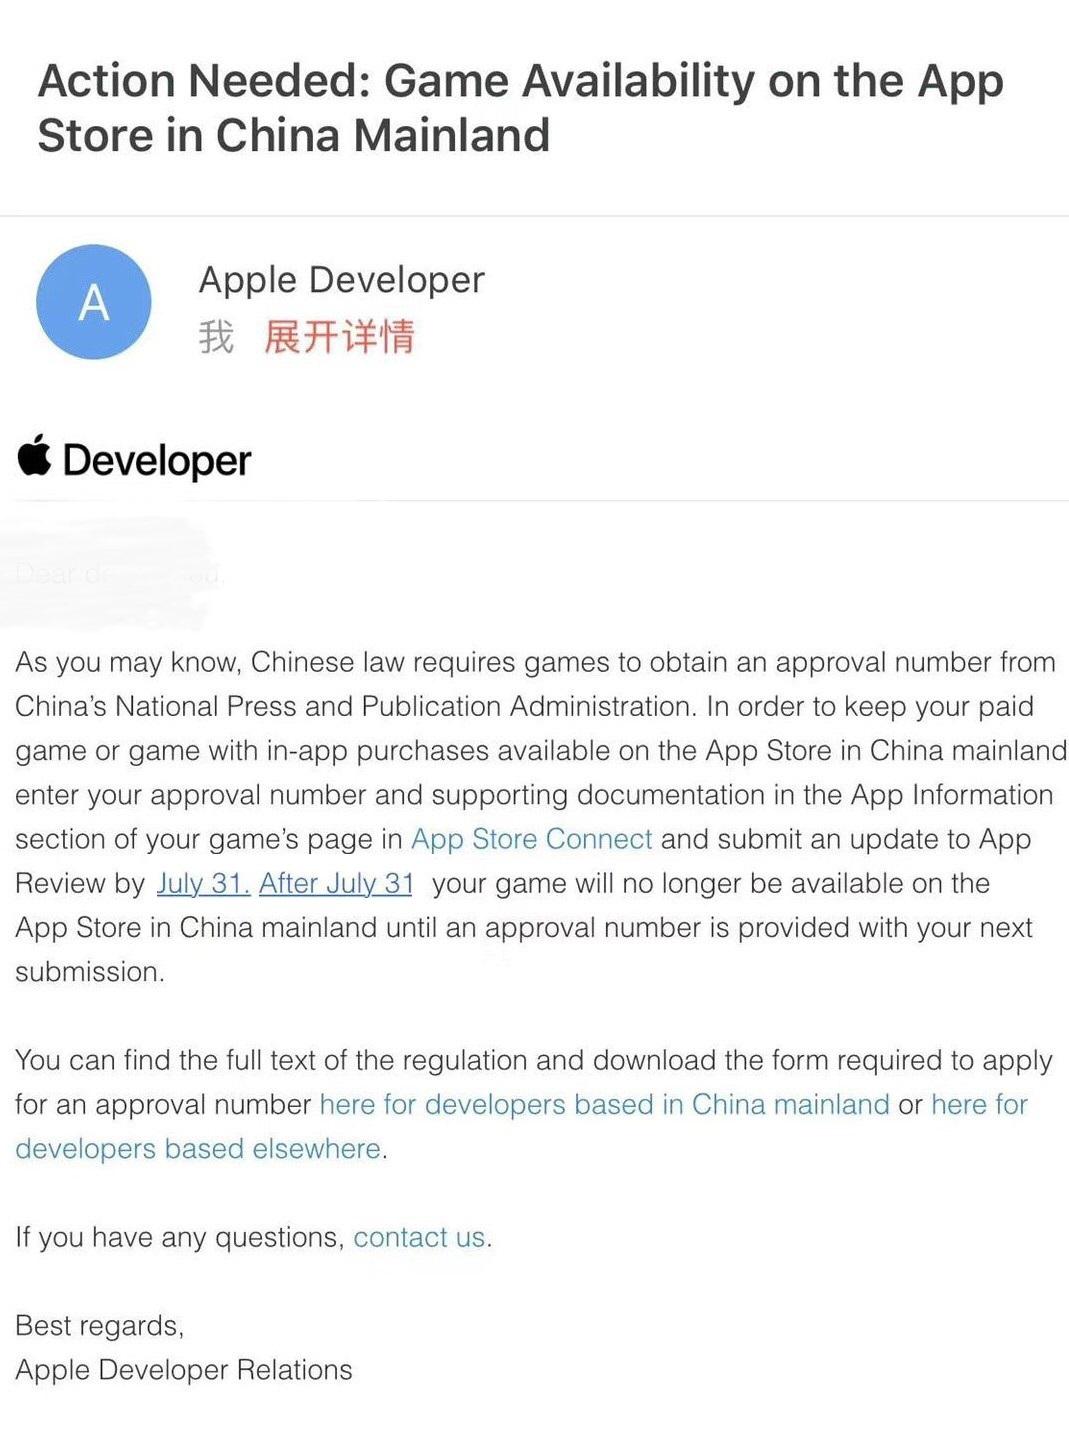 Apple gives ultimatum to China App Store game developers without approval numbers-cnTechPost